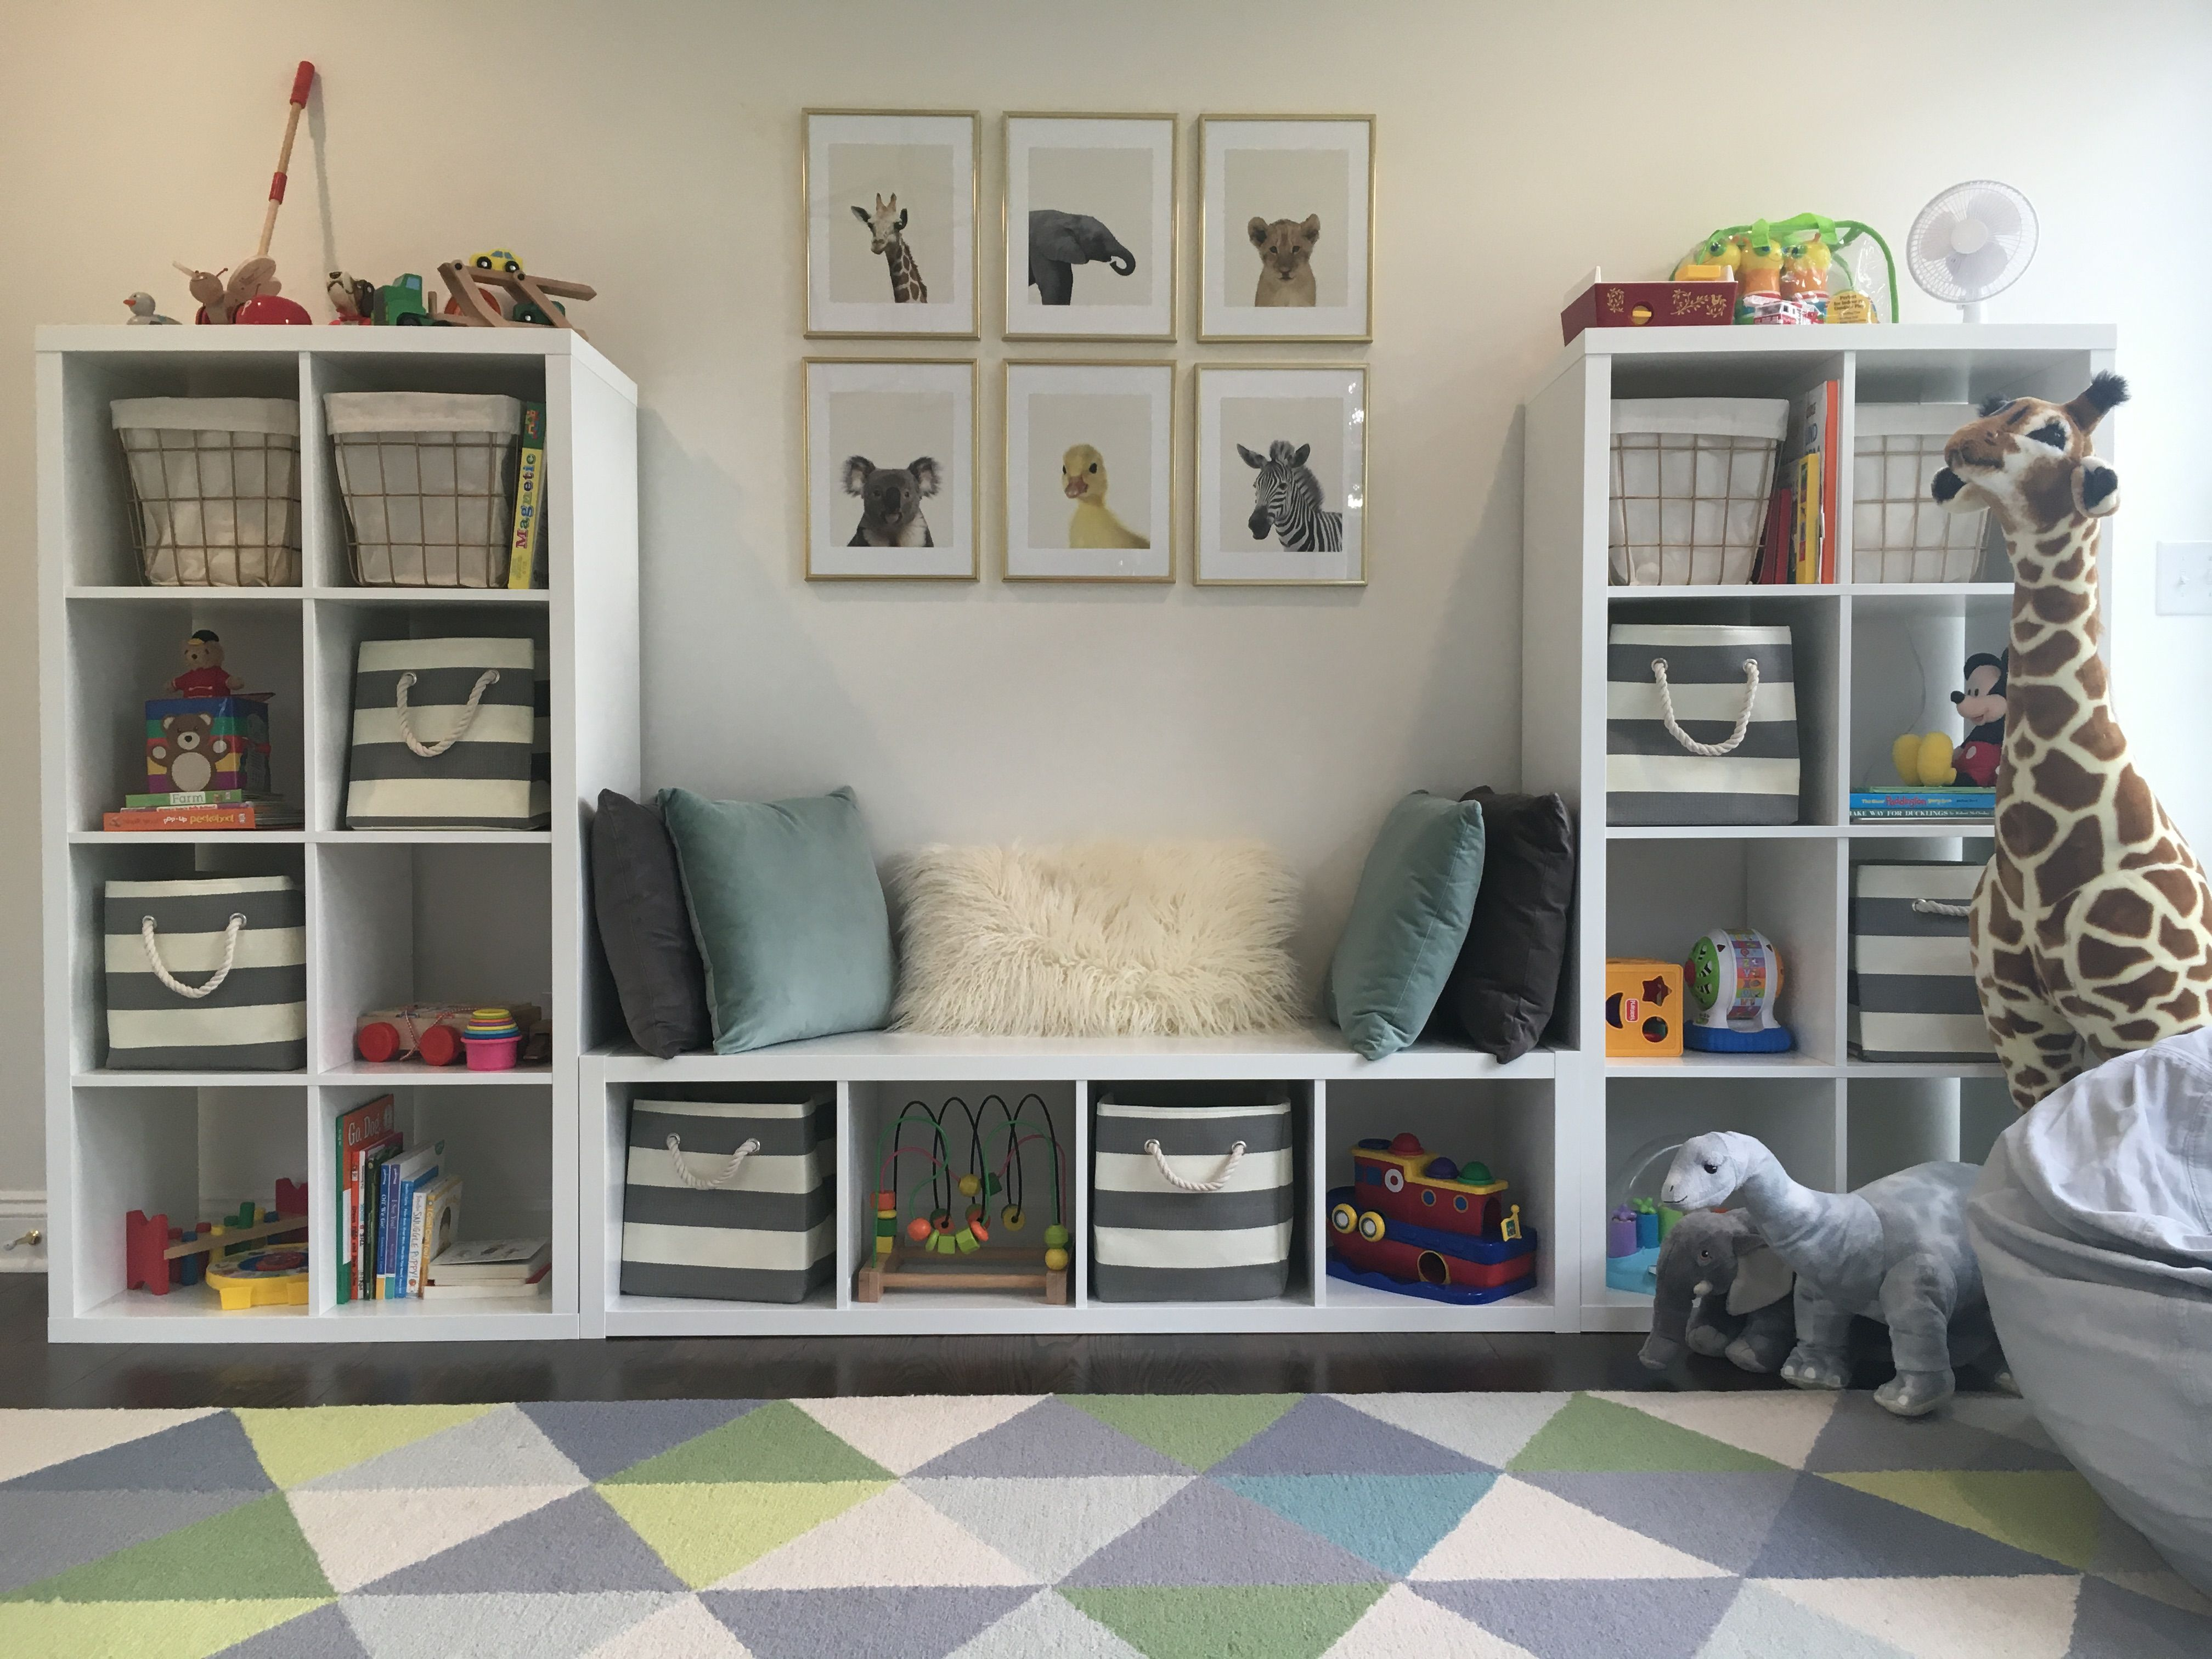 Playroom Storage Ideas 7 431 Toy Storage Ideas 2019 Diy Plans In A Small Space